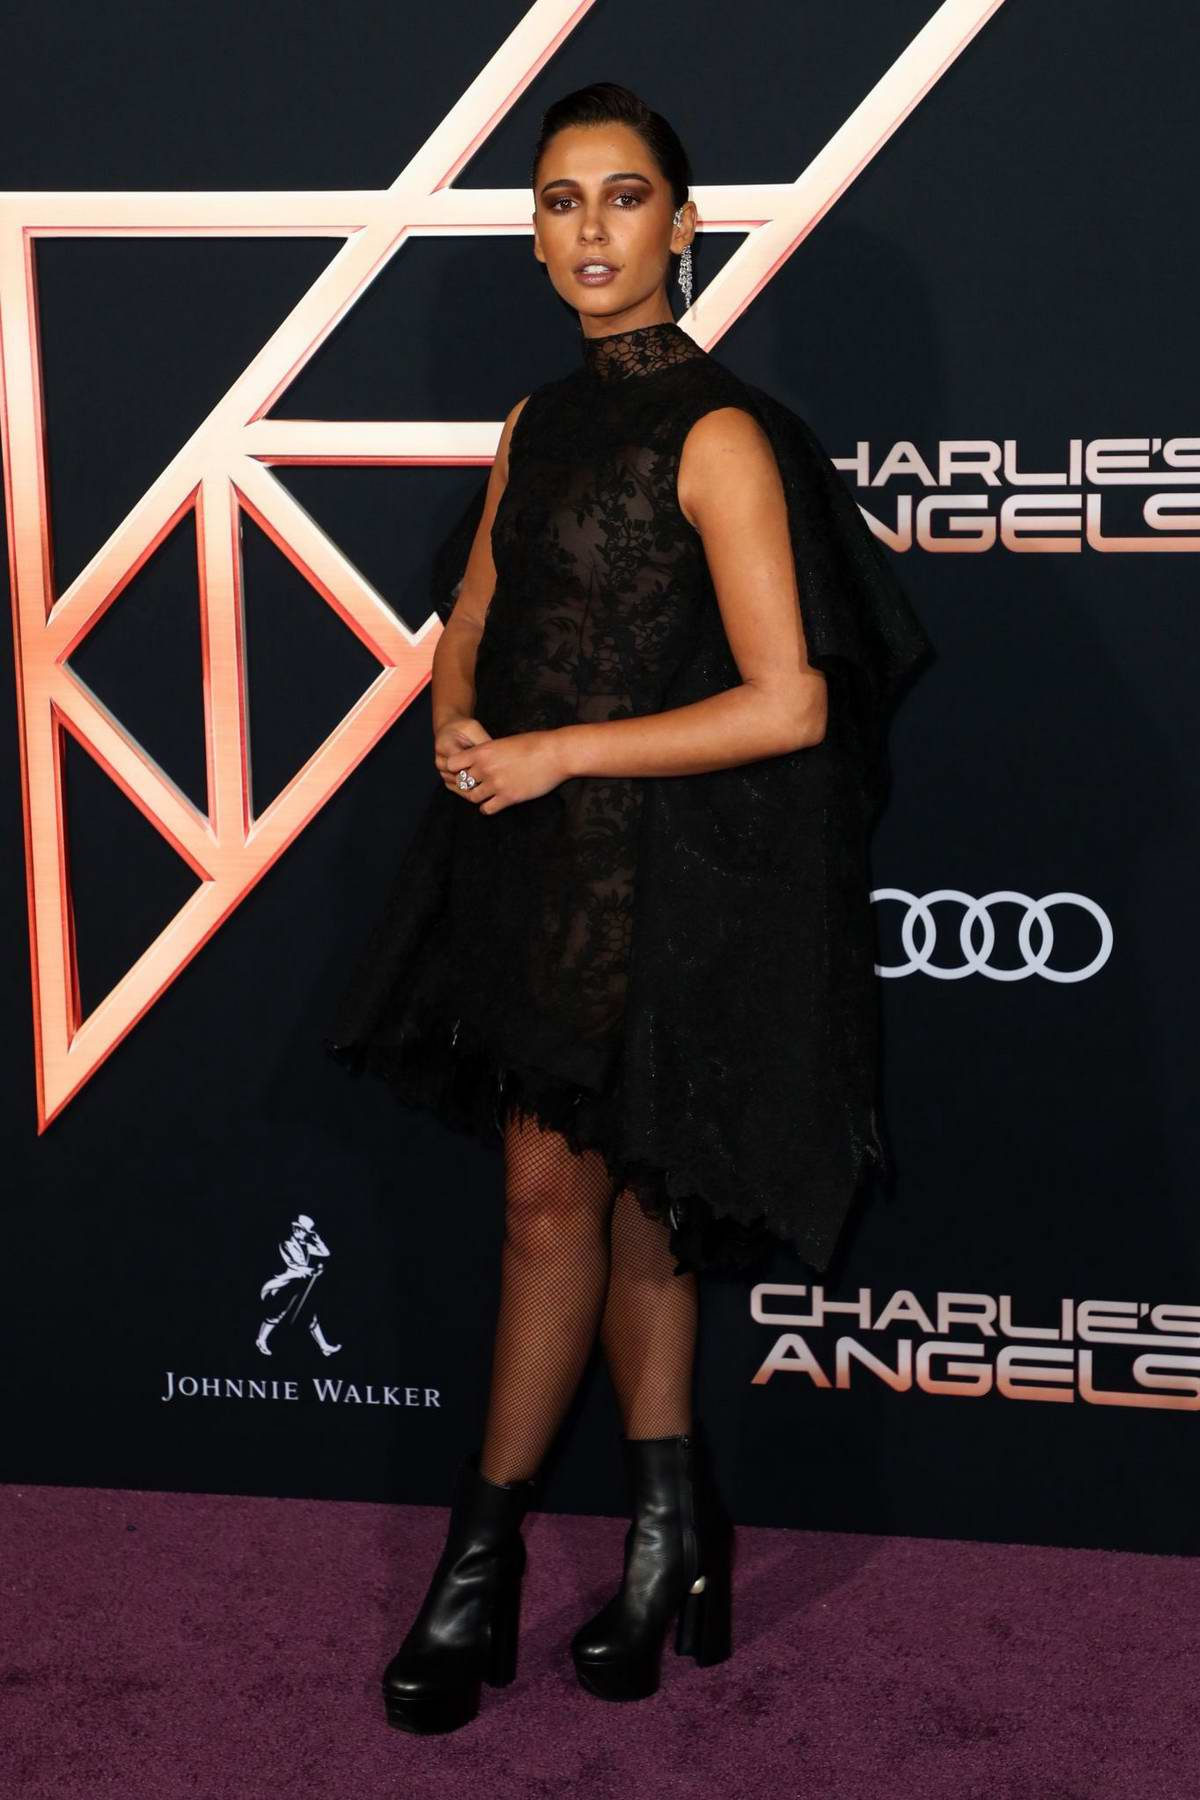 Naomi Scott attends the Premiere of 'Charlie's Angels' at Westwood Regency Theater in Los Angeles